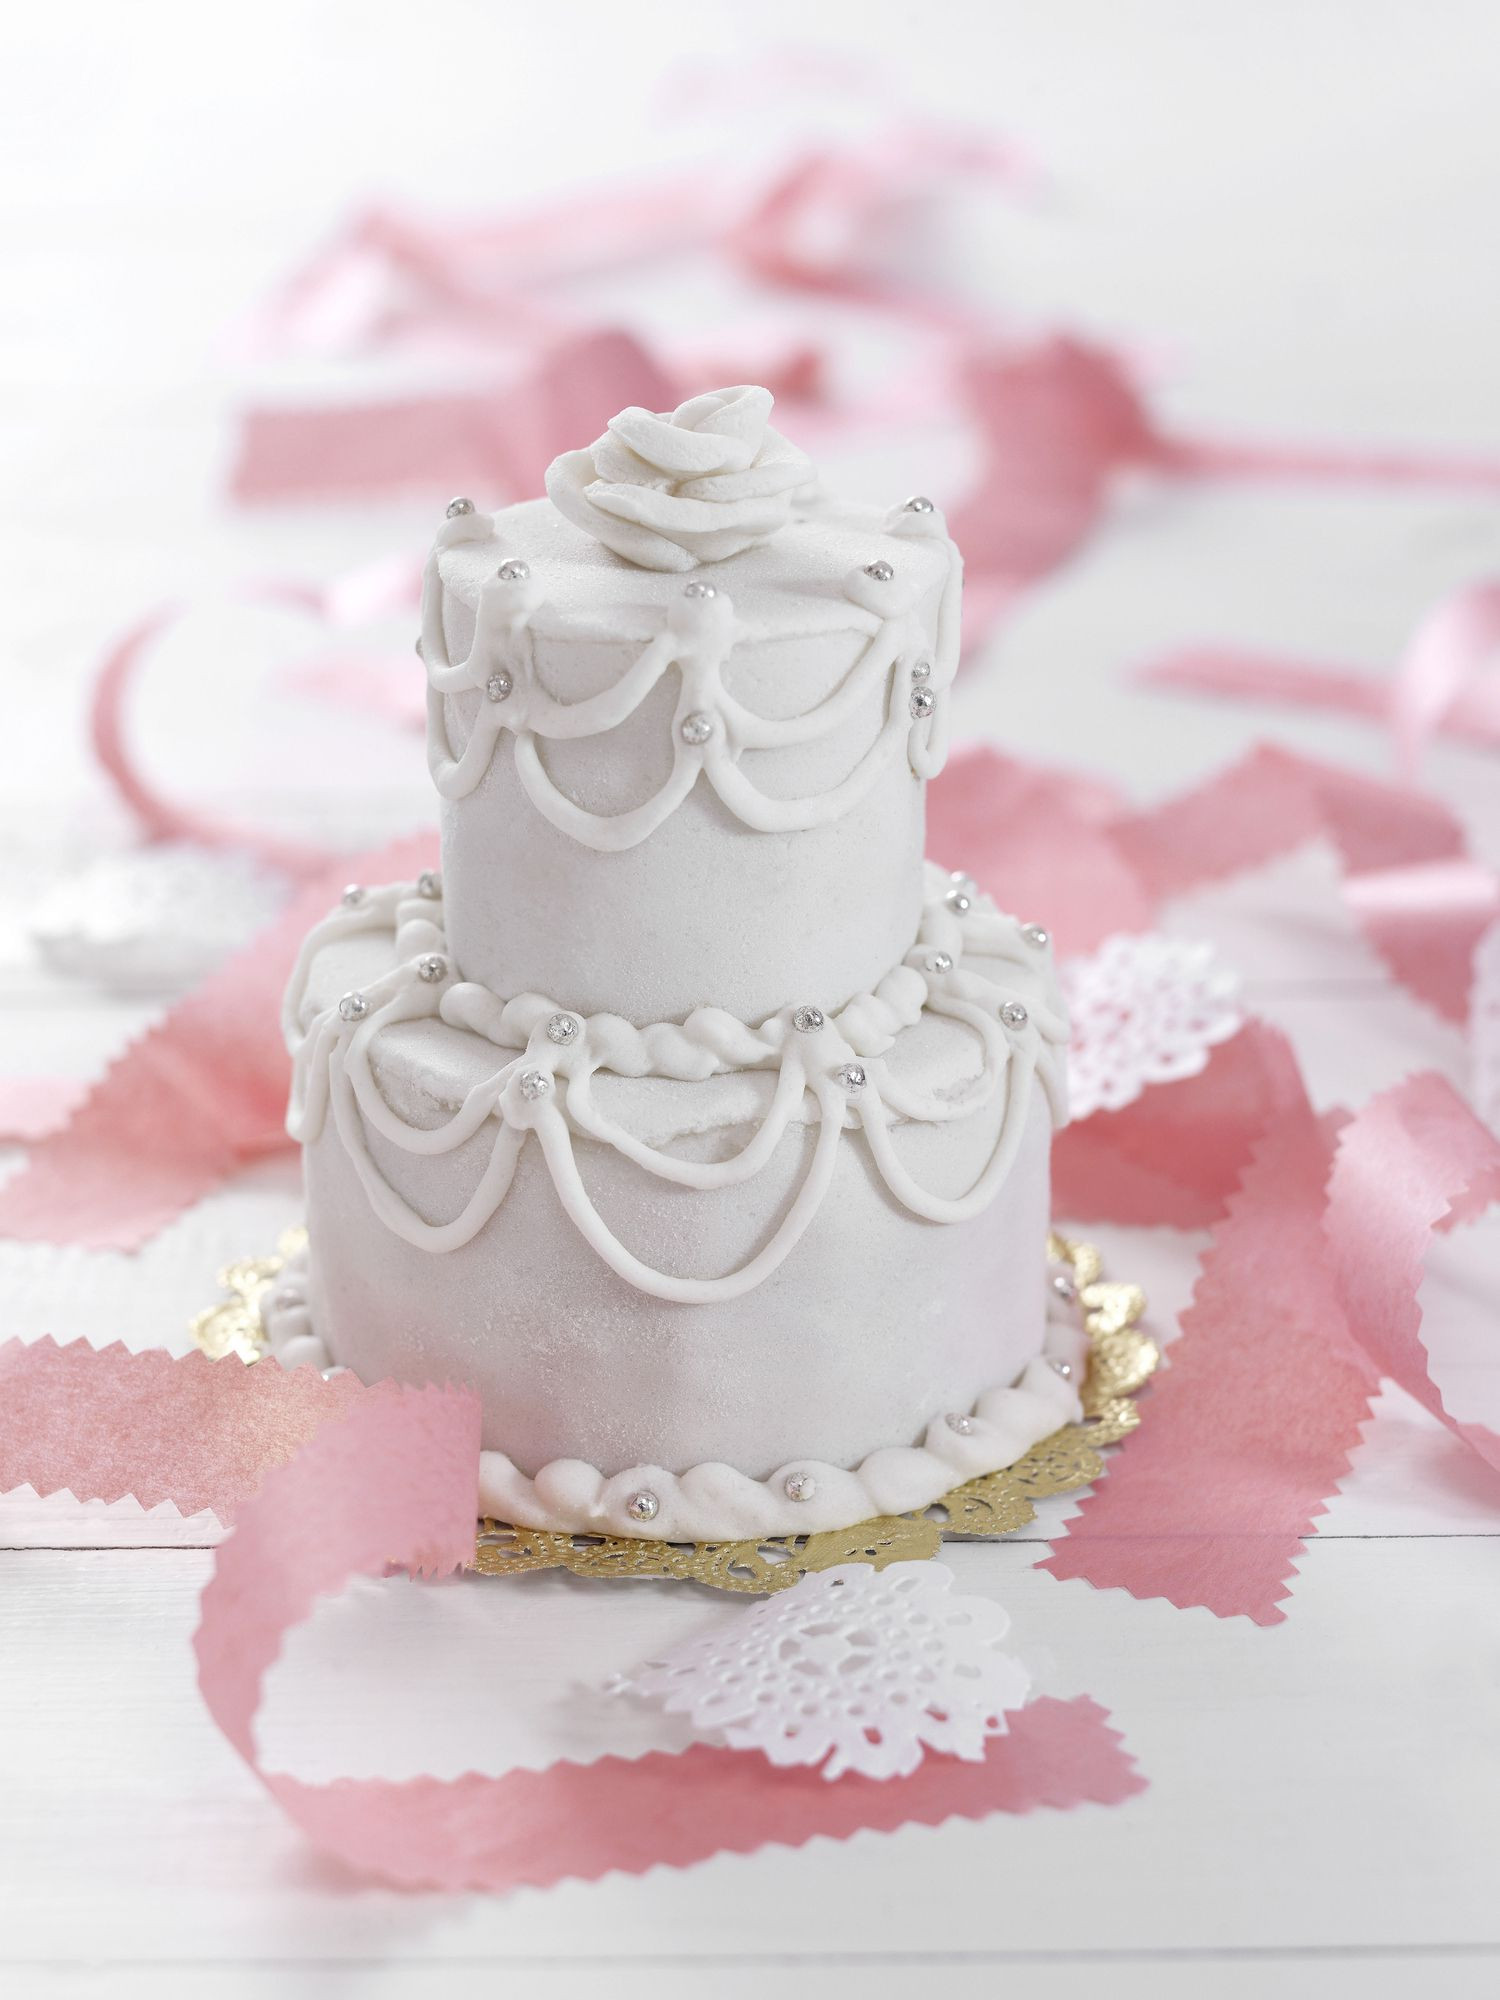 Making Wedding Cakes Beginners  How to Make a Wedding Cake a Beginner s Guide